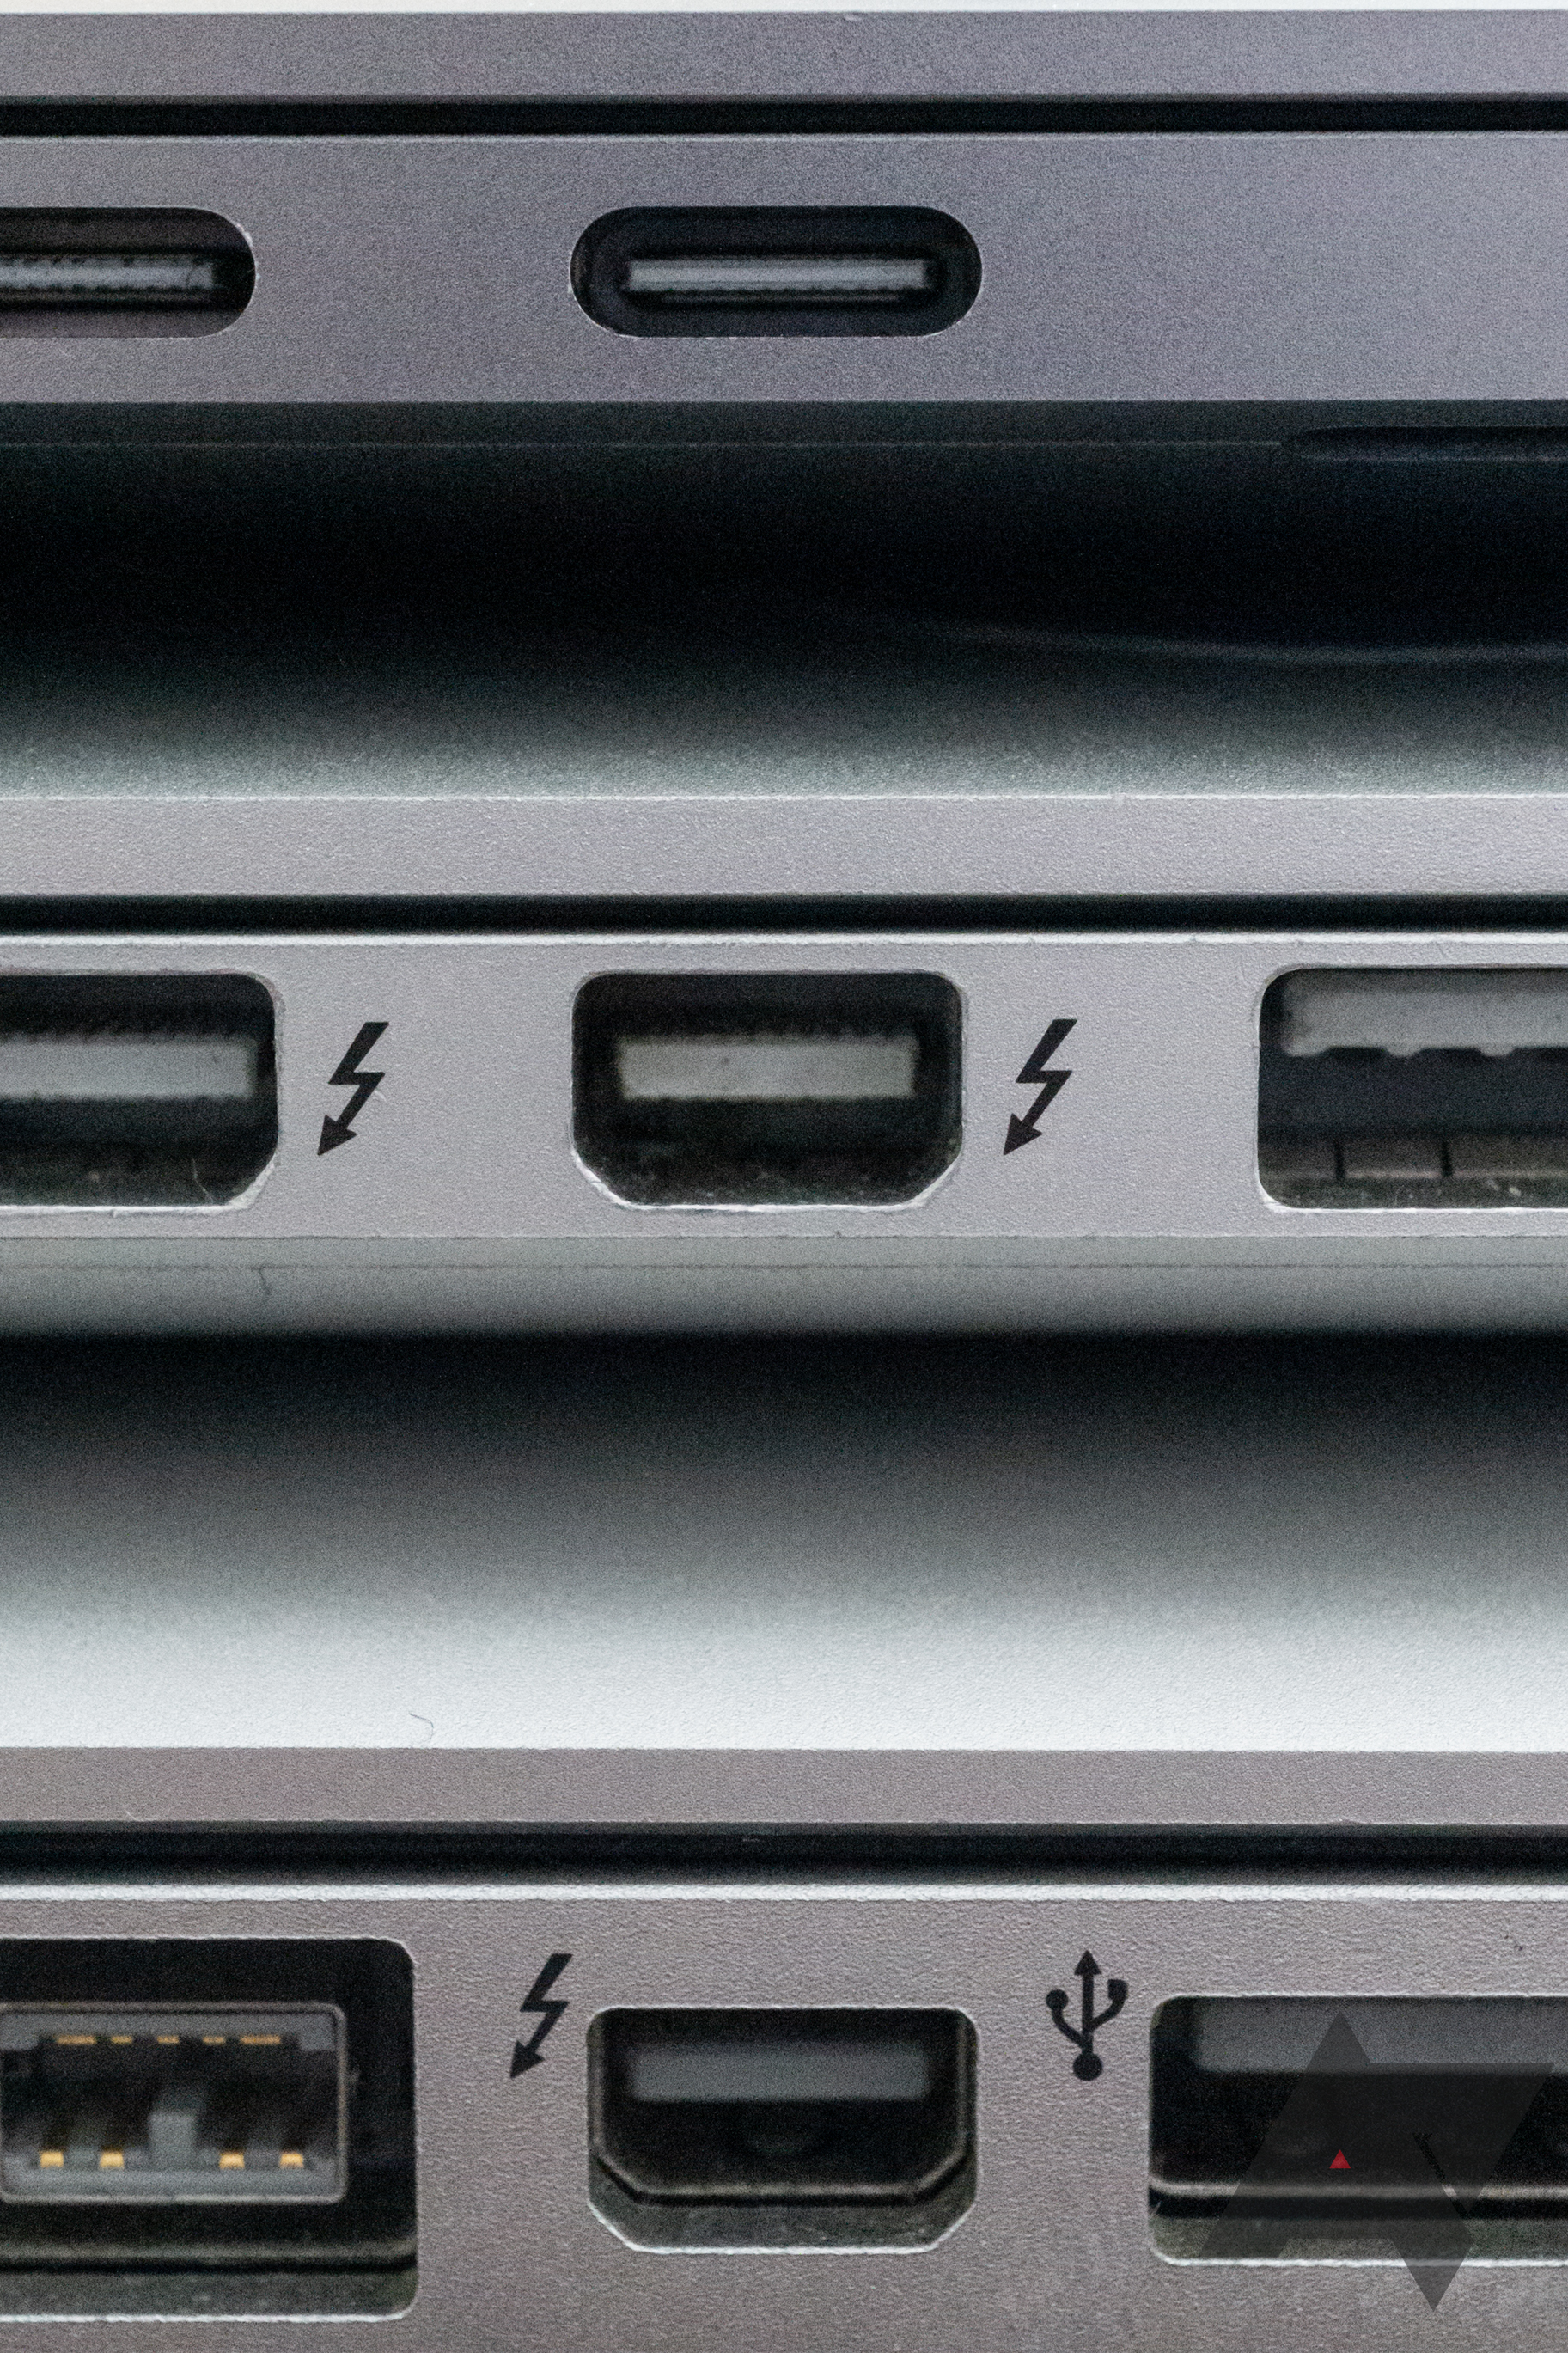 USB4 will double the speed of USB 3 2 by basically becoming